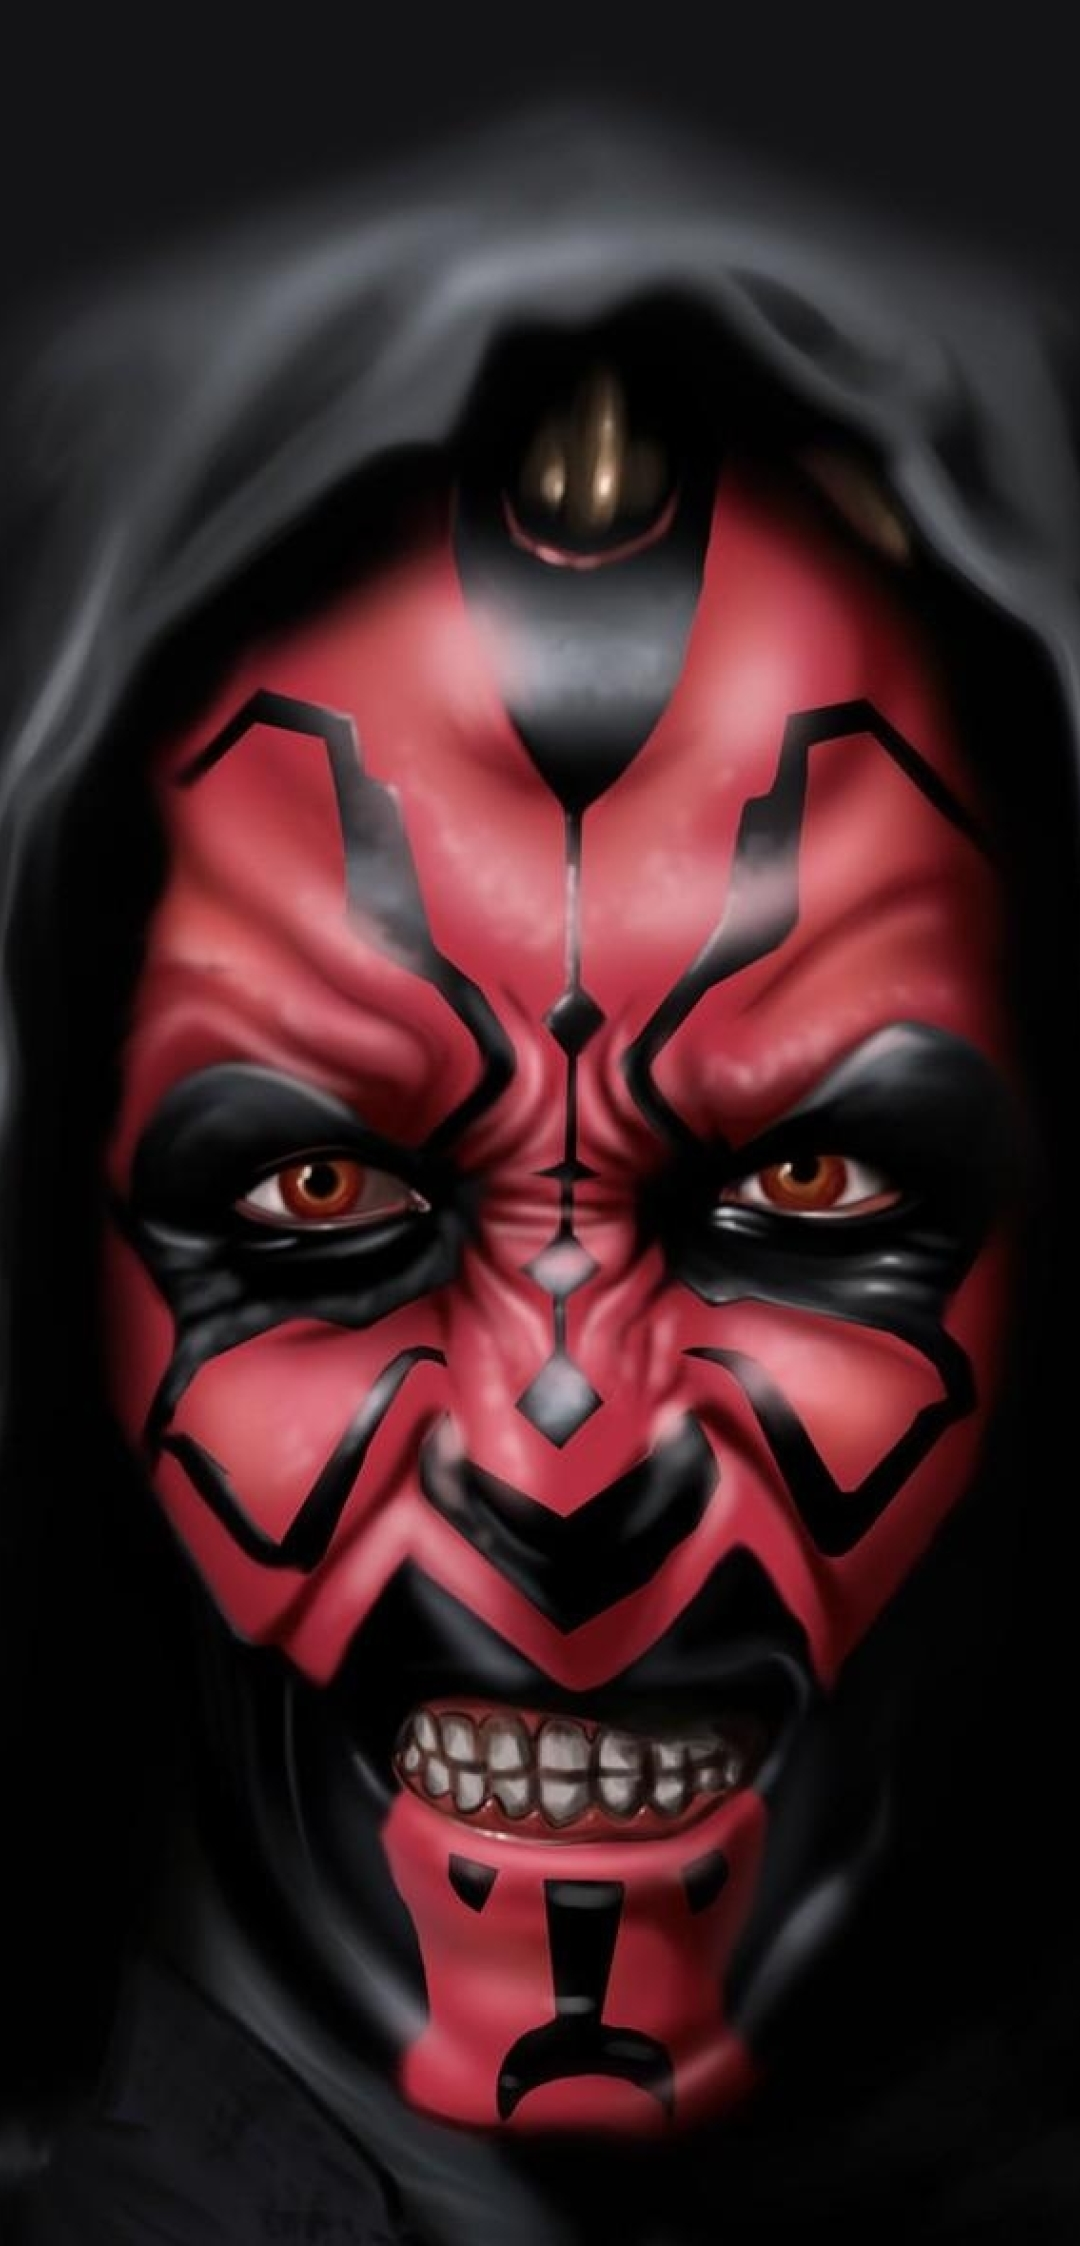 1080x2246 Sith Star Wars Darth Maul 1080x2246 Resolution Wallpaper Hd Fantasy 4k Wallpapers Images Photos And Background